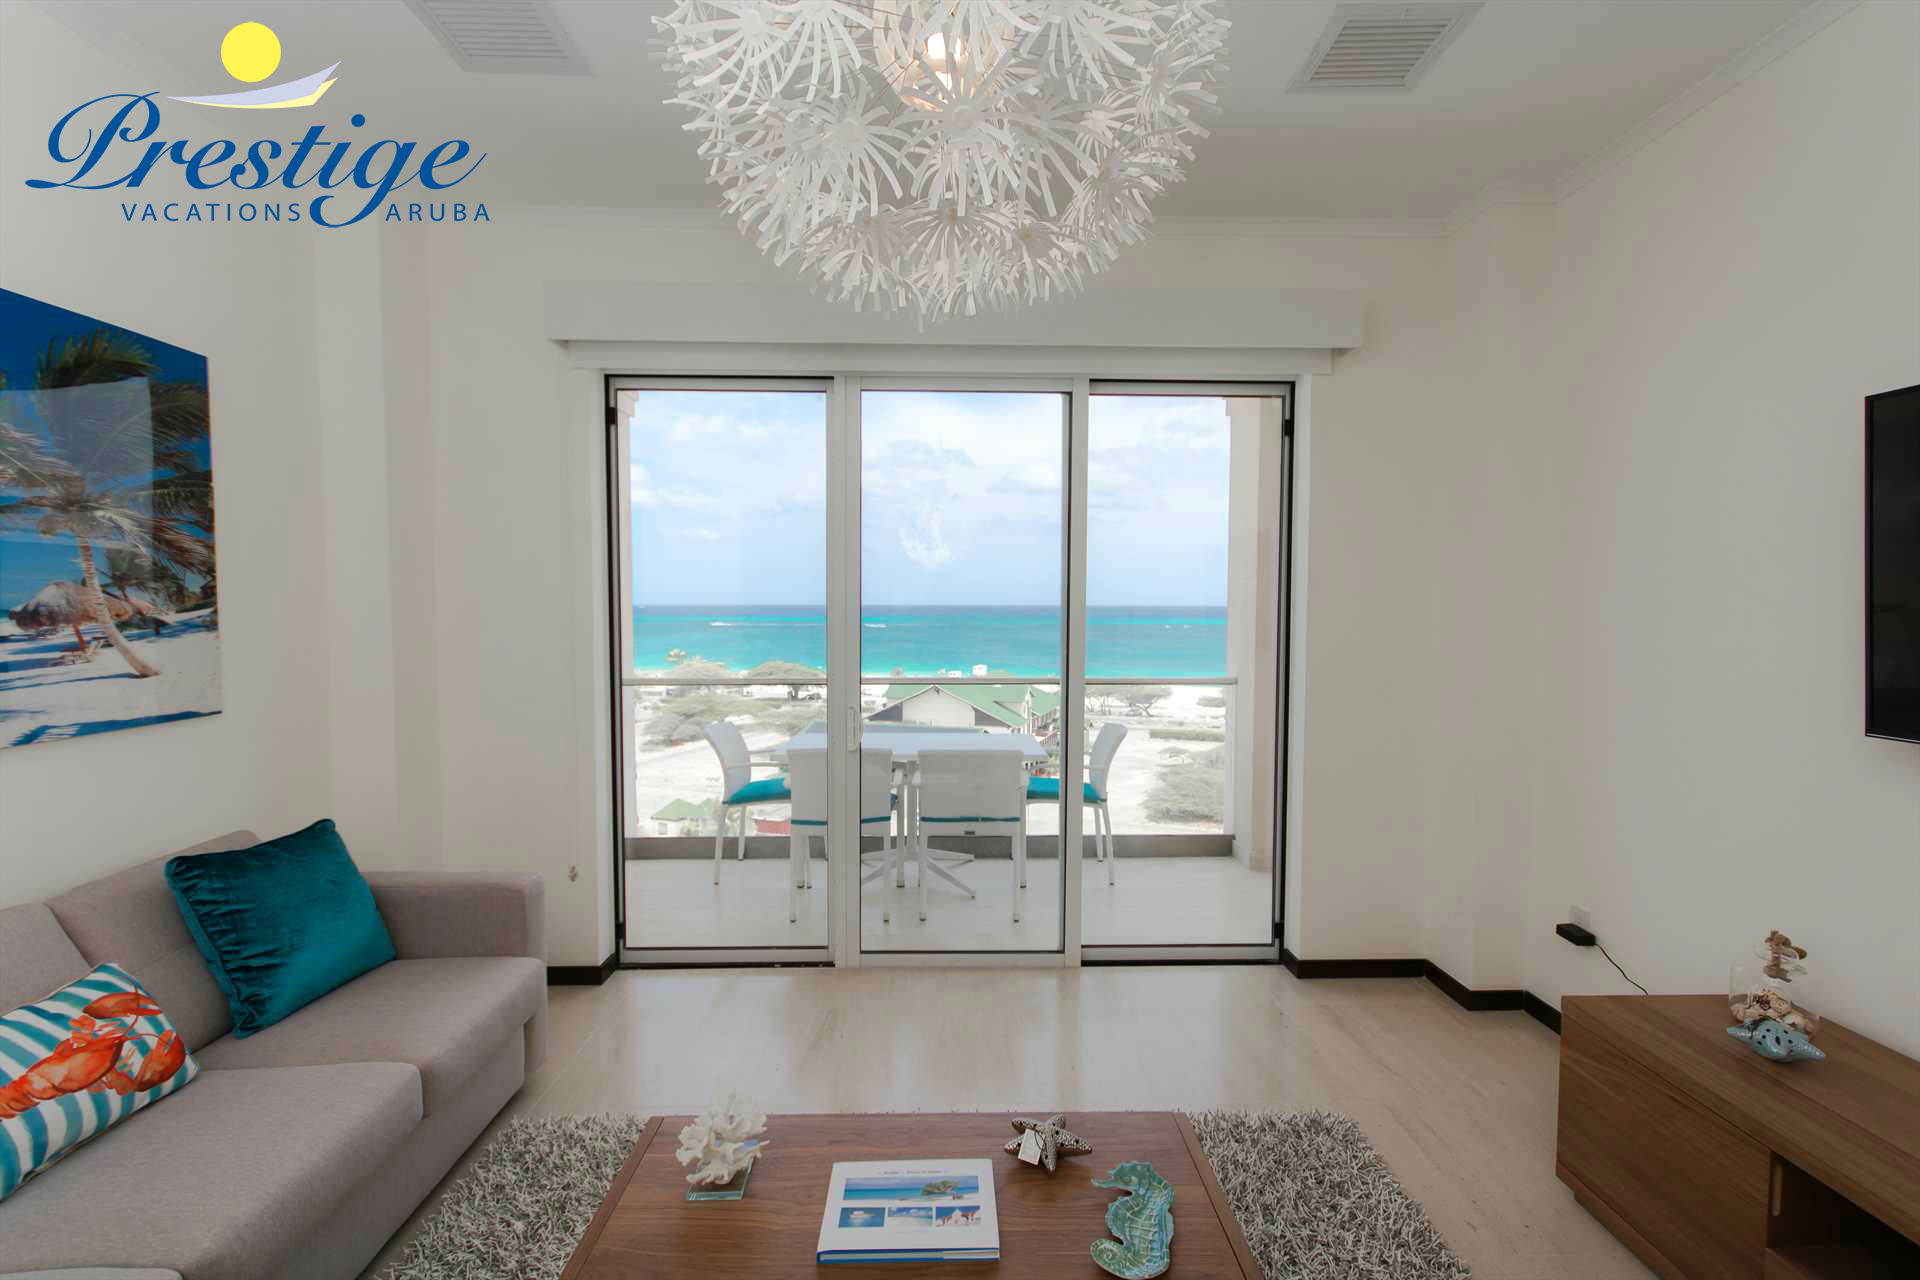 Living area with access to balcony with amazing ocean views!